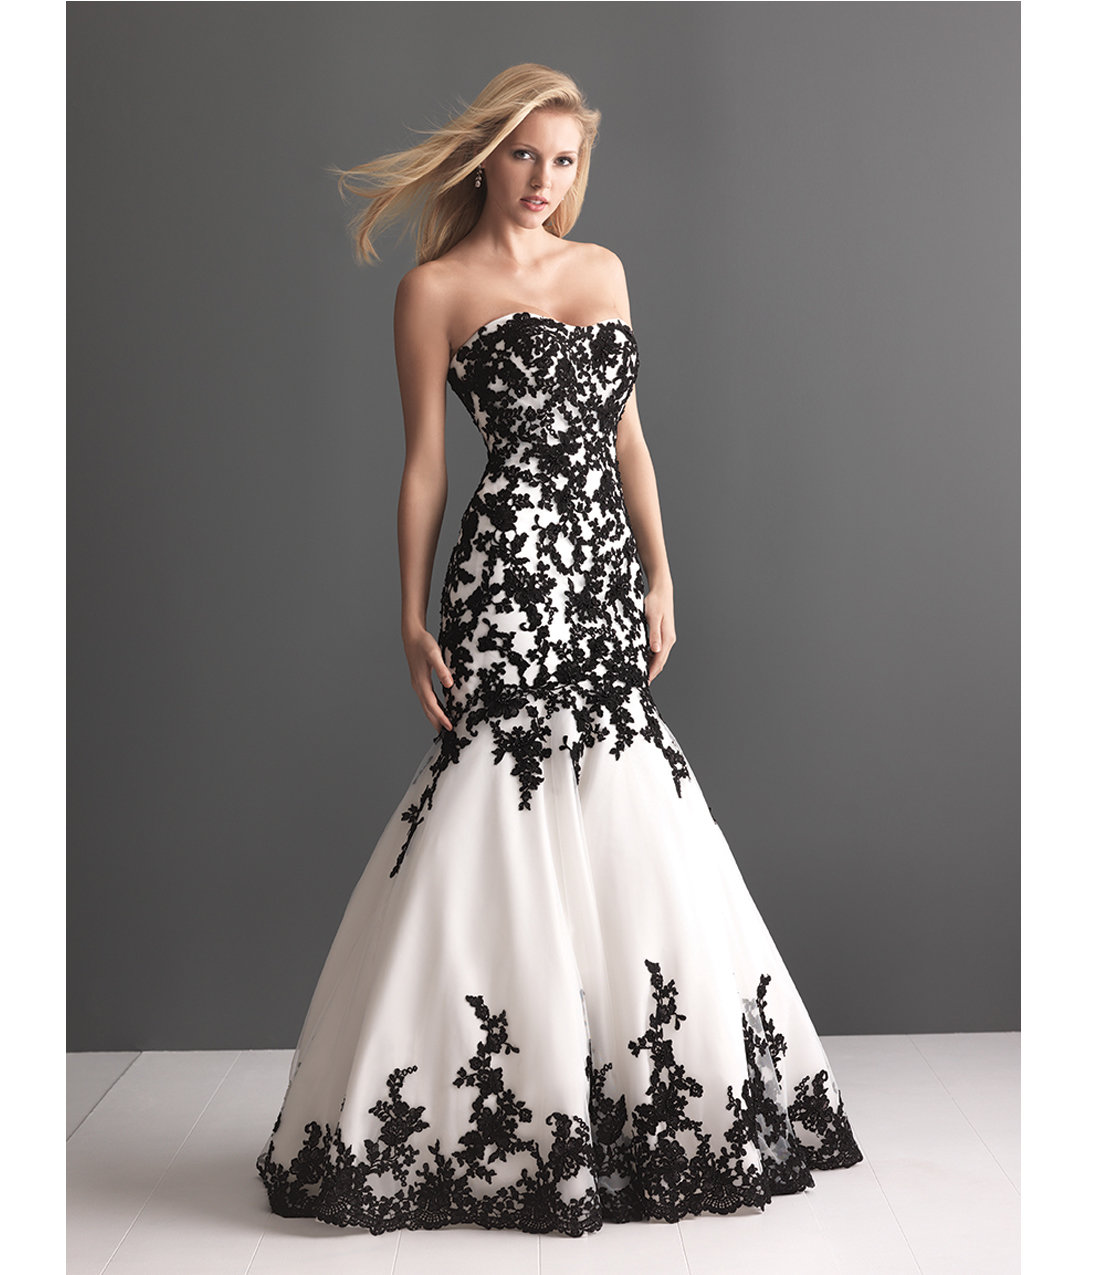 Unique White Prom Dresses - Boutique Prom Dresses